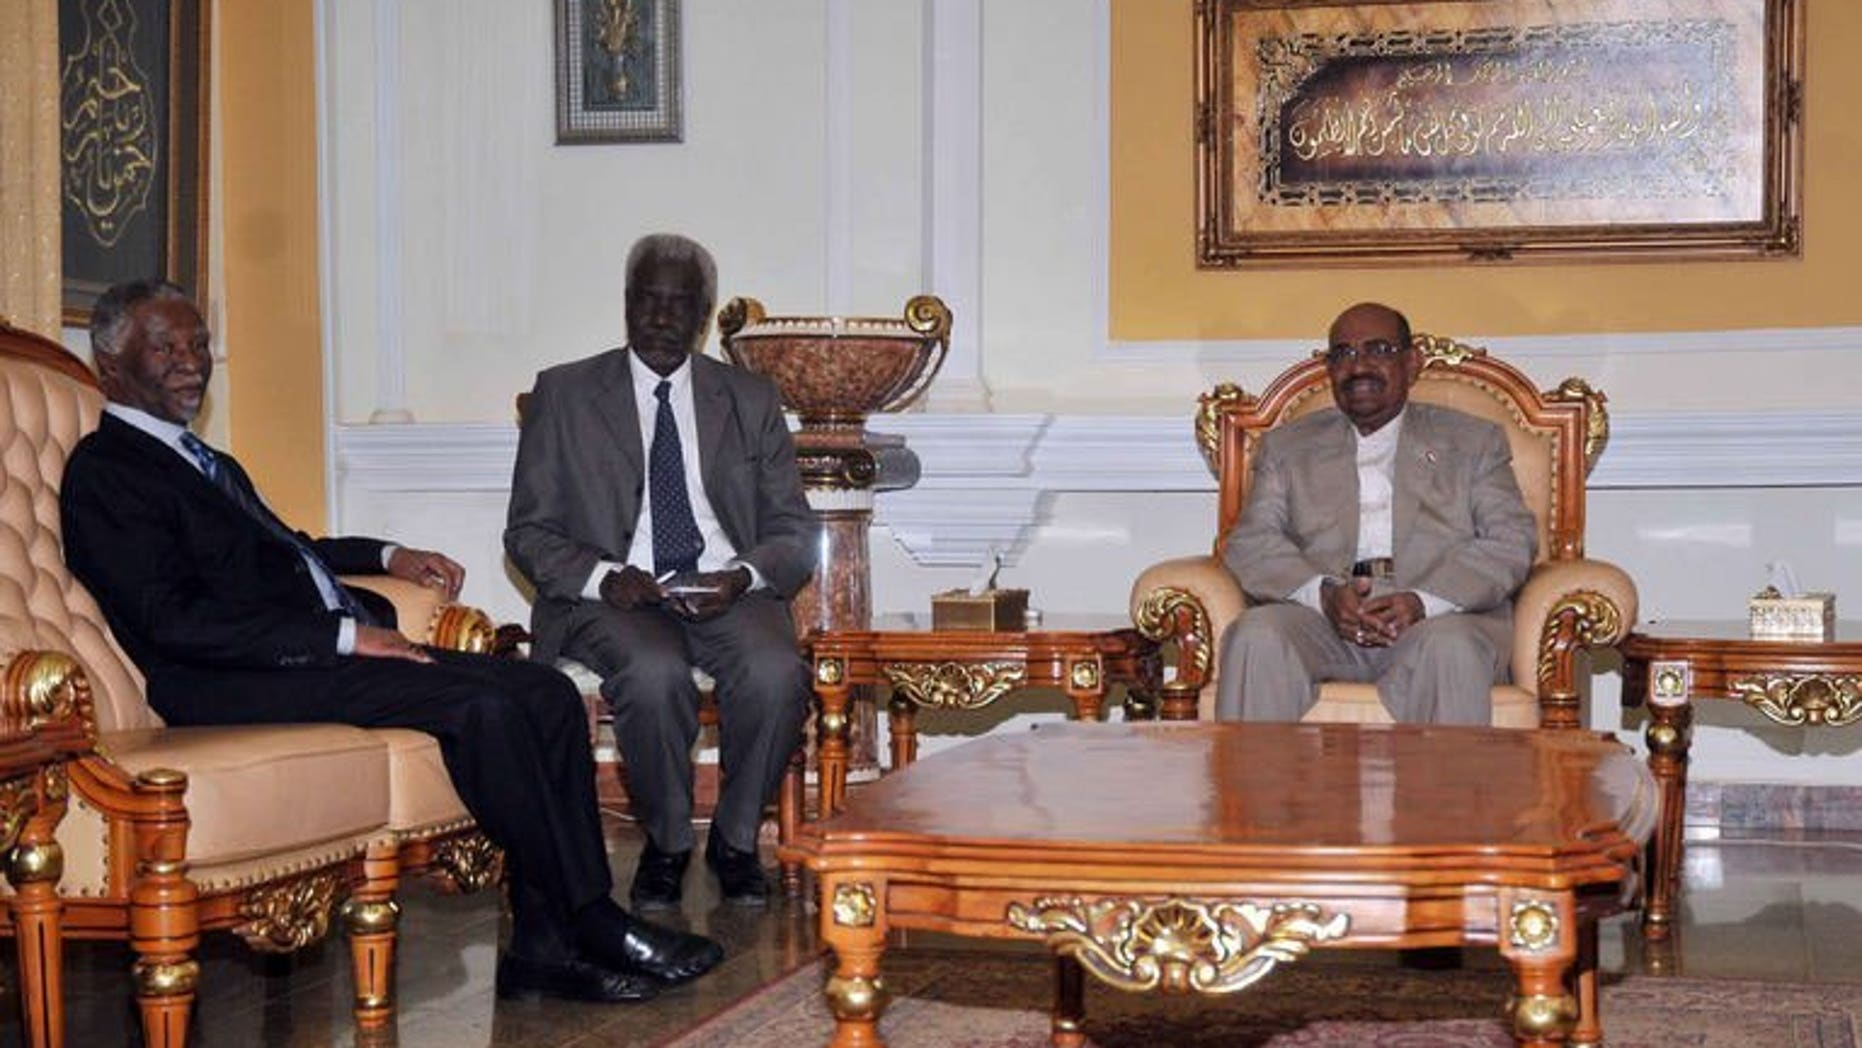 Sudanese President Omar al-Bashir (R) meets with South Africa's former president Thabo Mbeki (L) on July 25, 2013 in the Sudanese capital, Khartoum. African officials asked Sudan for more time to probe allegations of cross-border rebel support as a deadline nears for shutting the economically vital pipeline carrying South Sudanese oil.